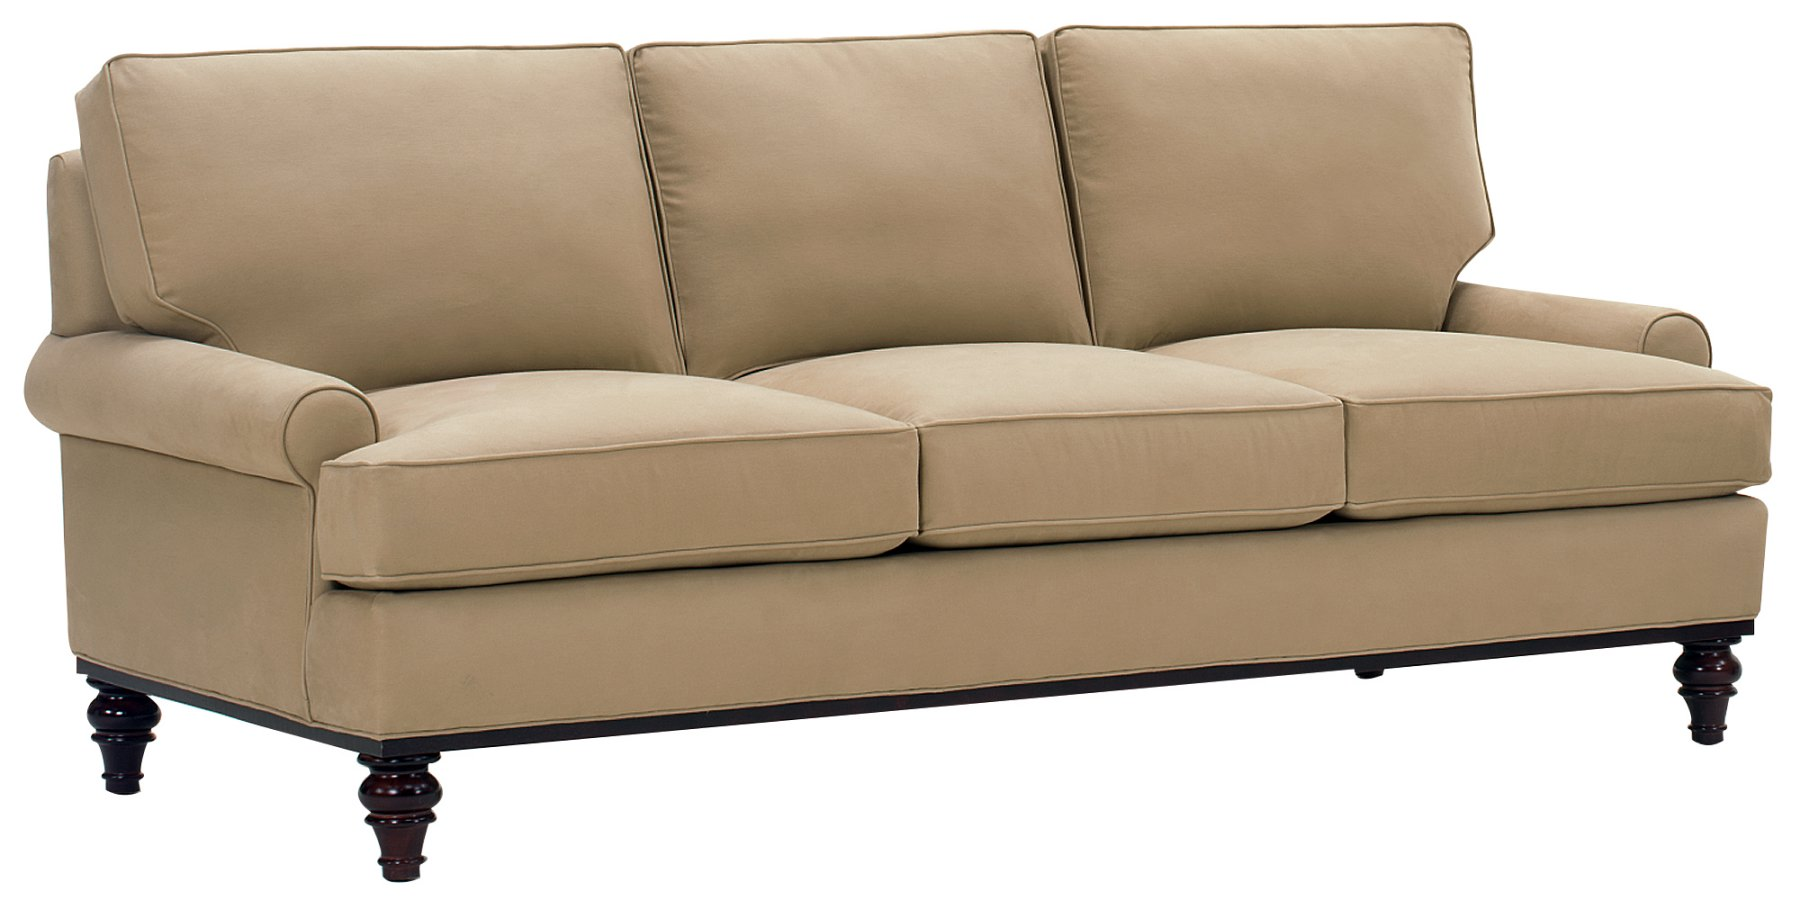 fabric sofa pictures new york style bed upholstery sofas center fearsome